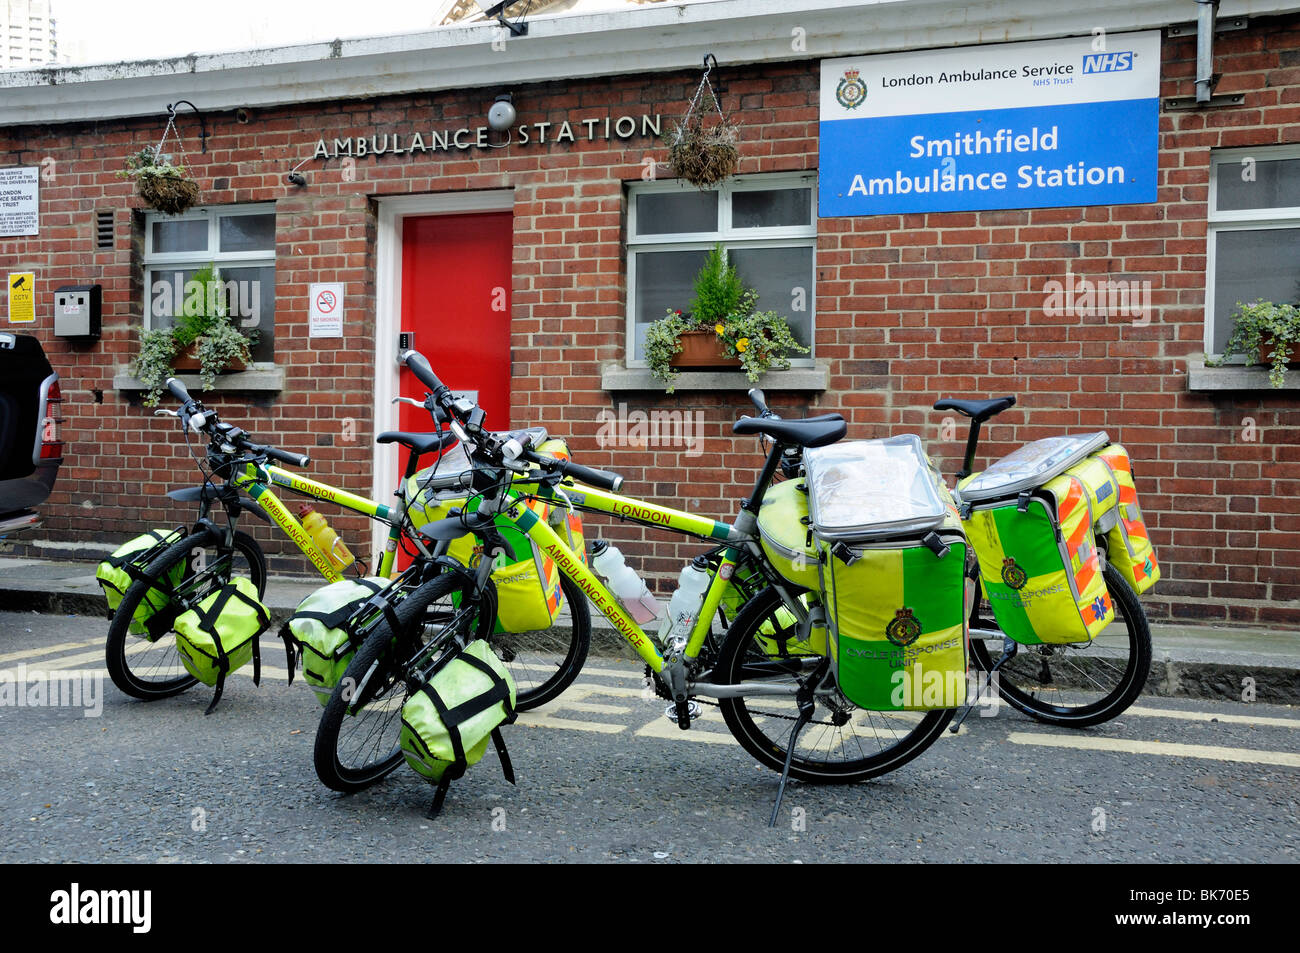 Paramedic Cycle response unit bikes Smithfield Ambulance Station London England UK - Stock Image